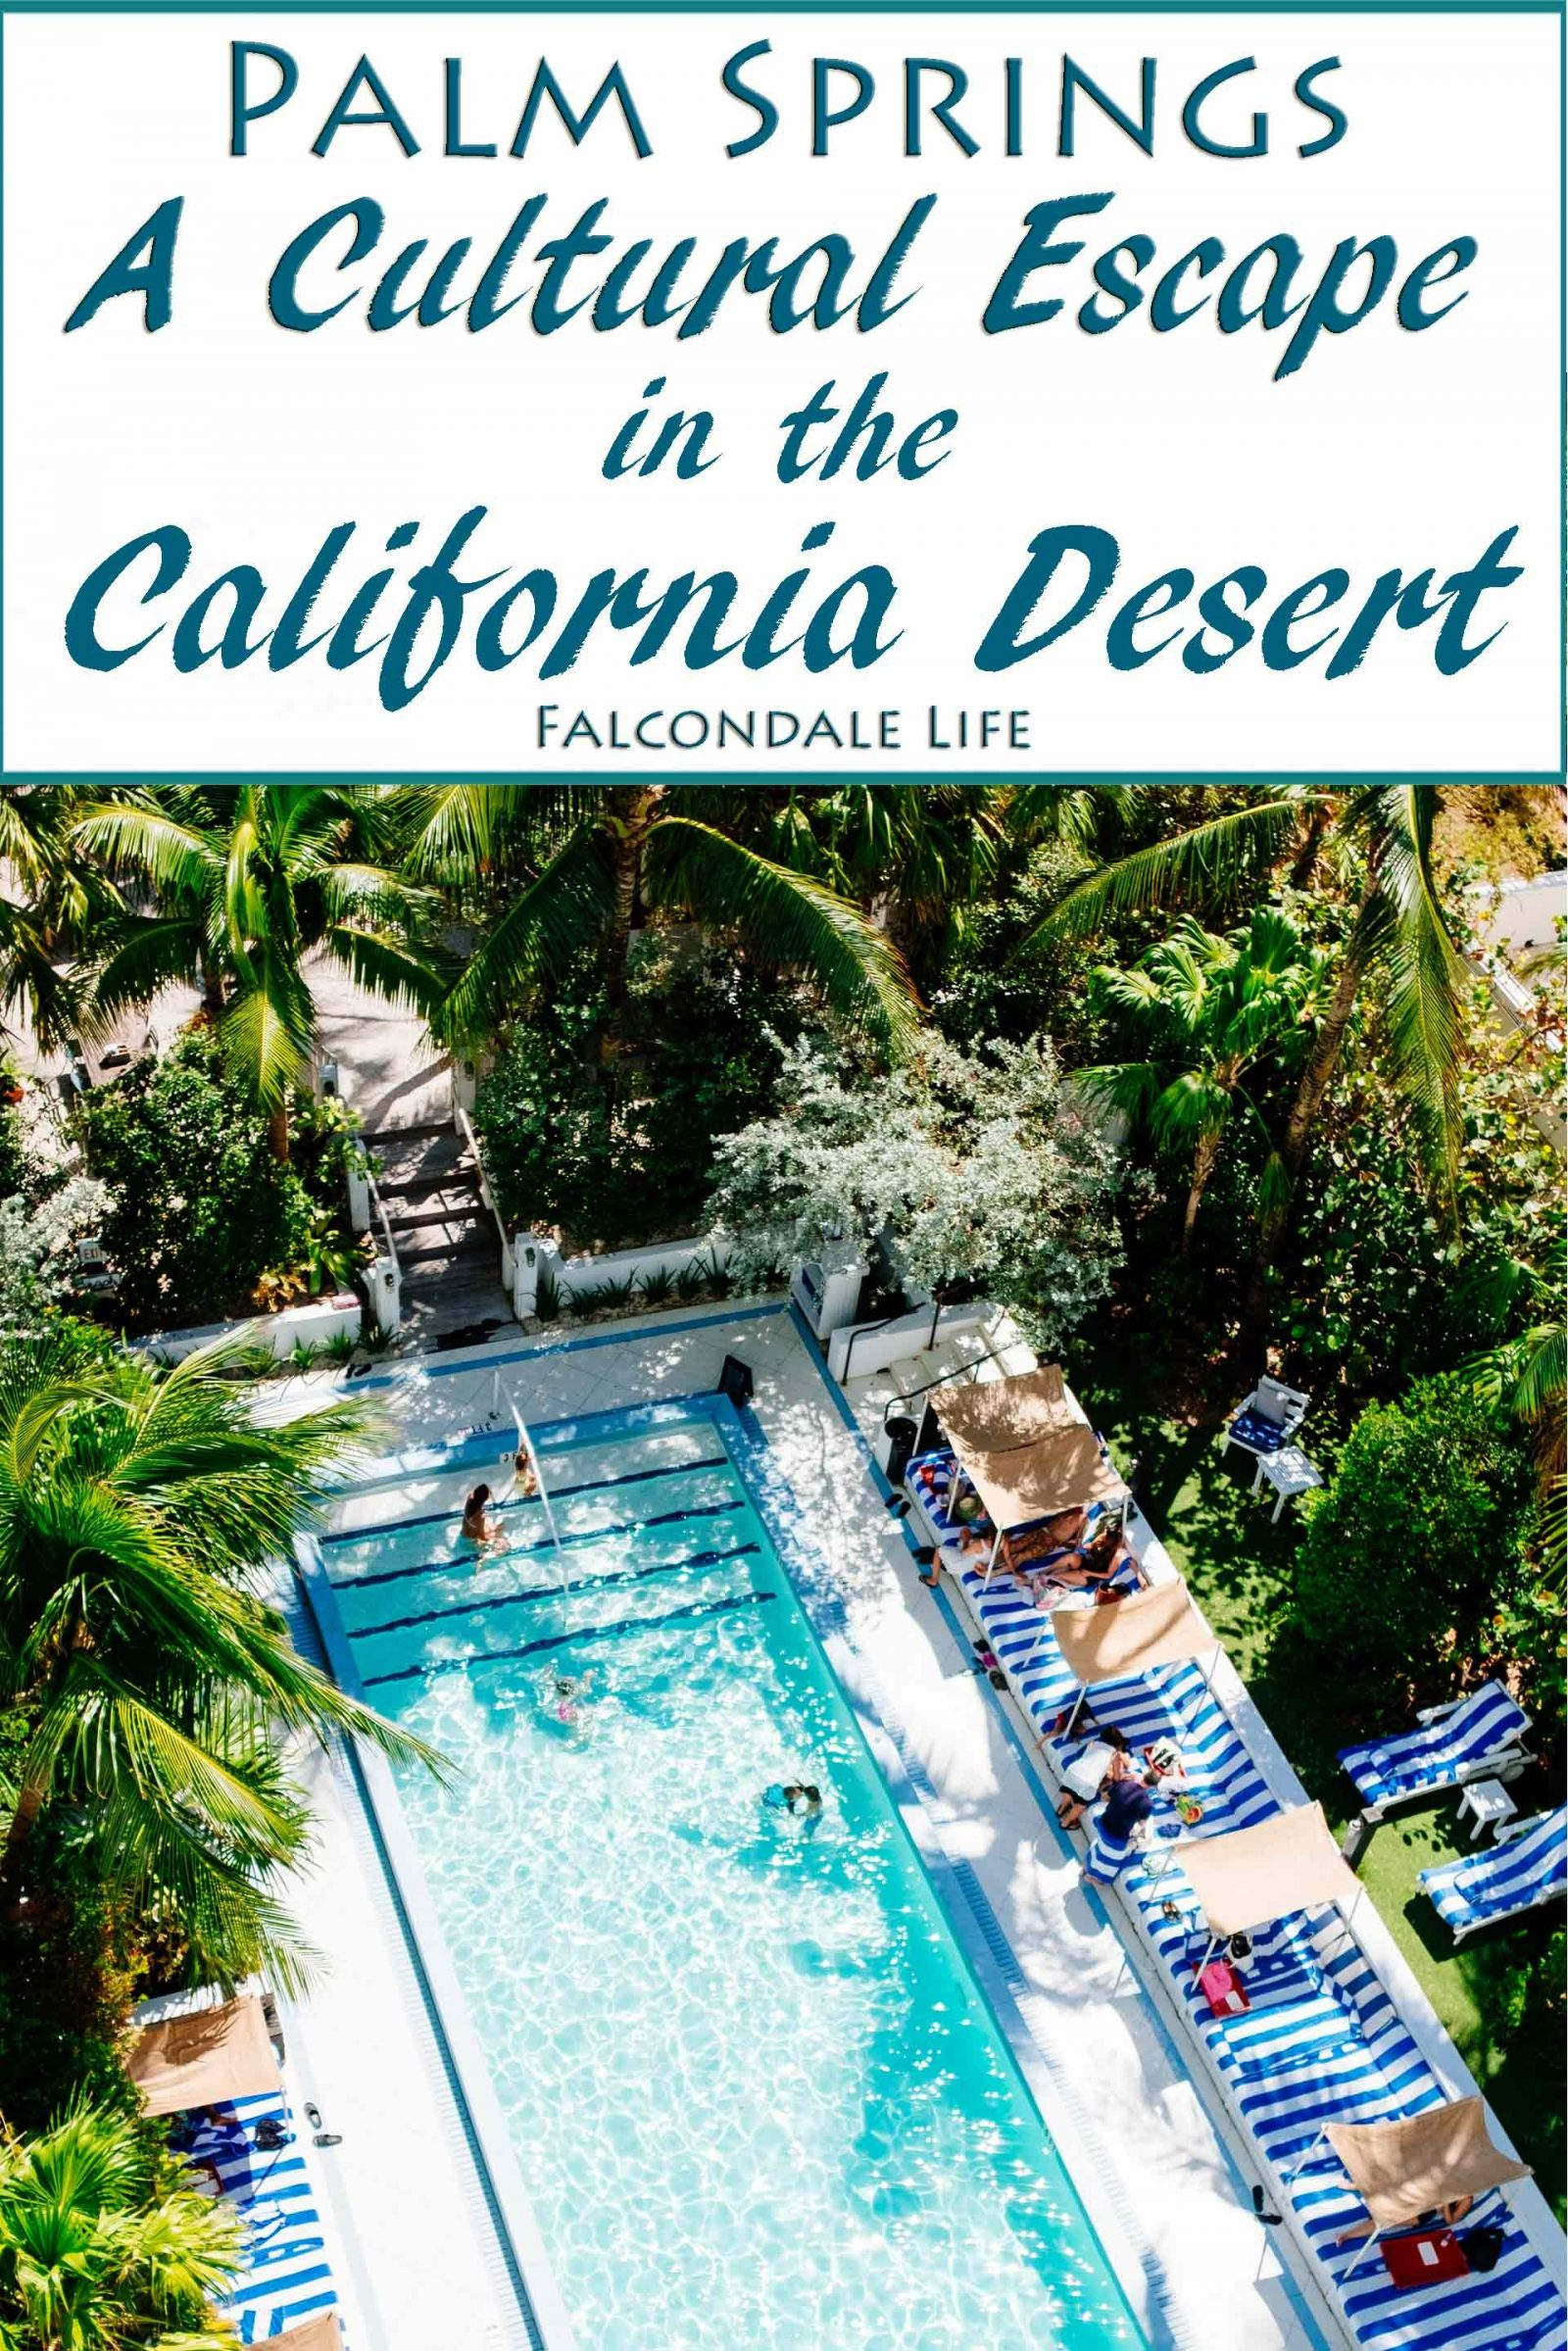 Palm Springs – A Cultural Escape in the California Desert